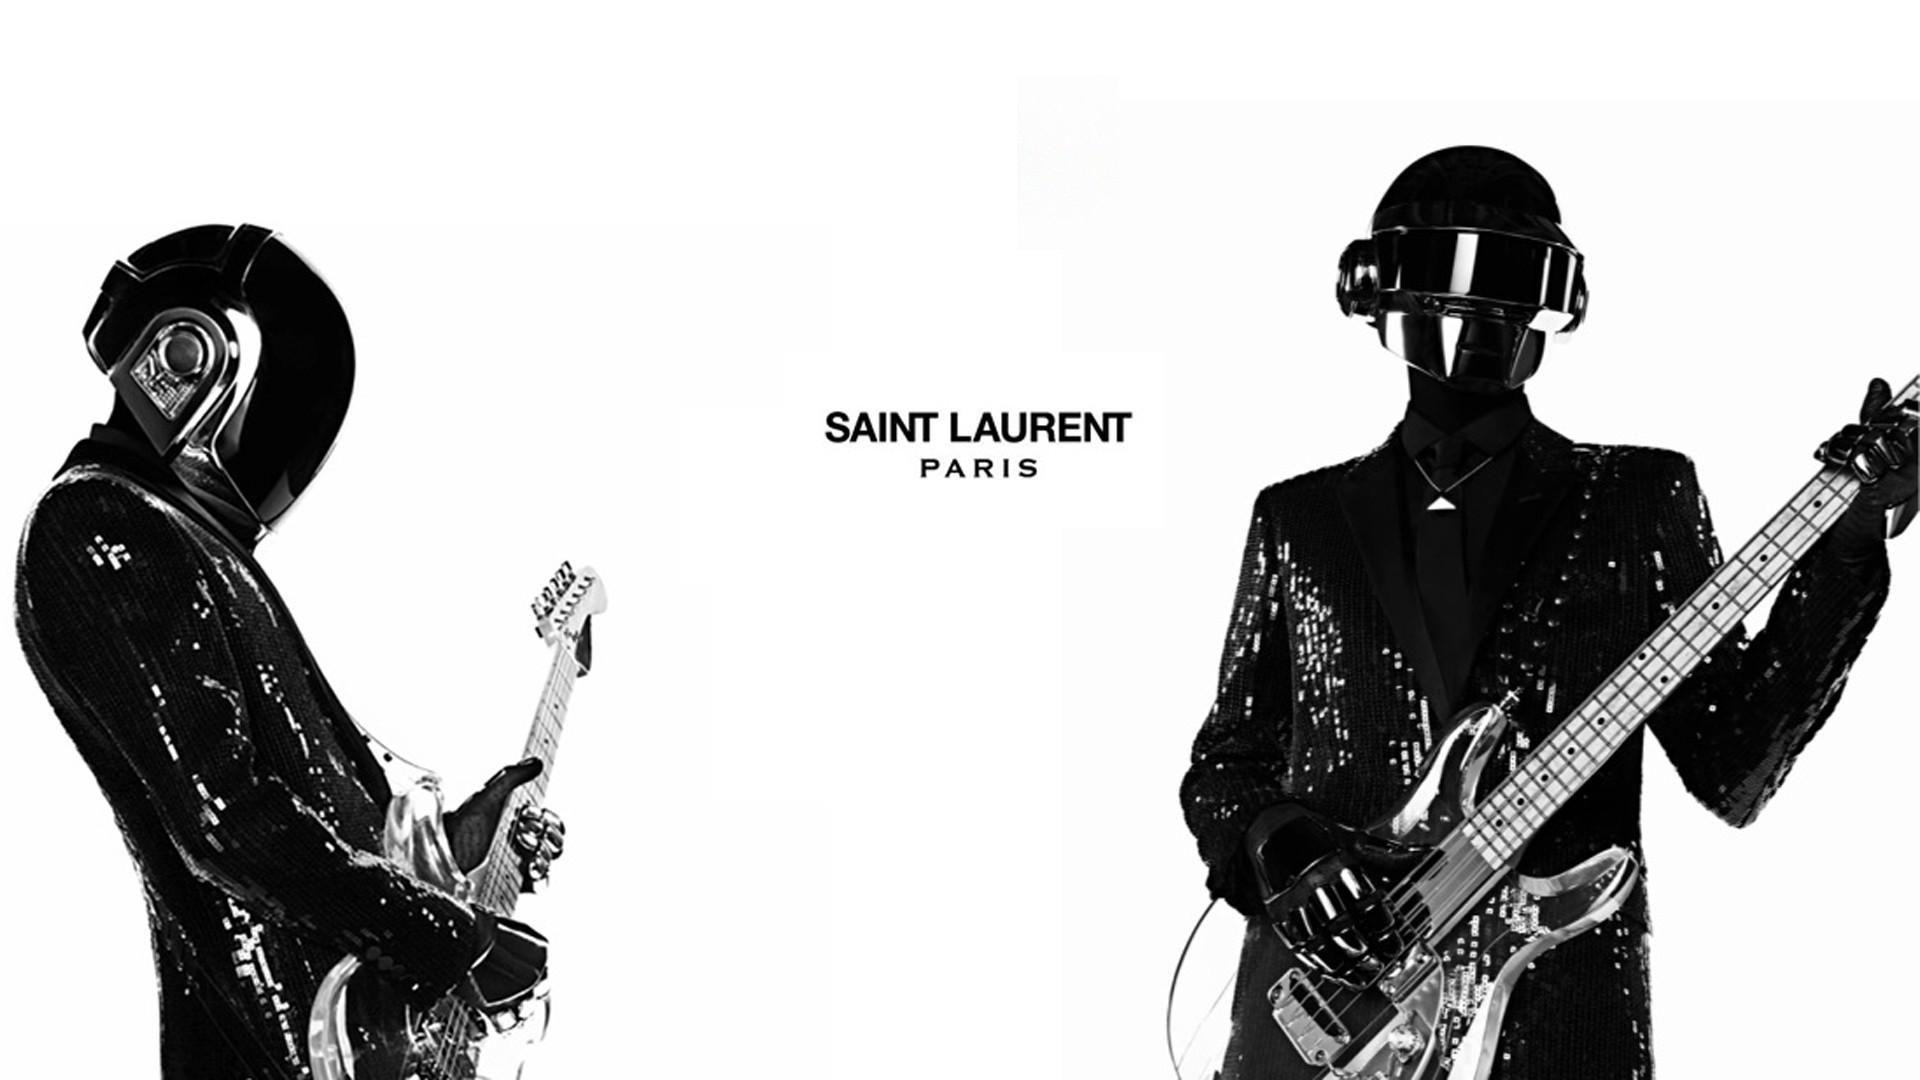 Saint Laurent Wallpapers Wallpaper Cave